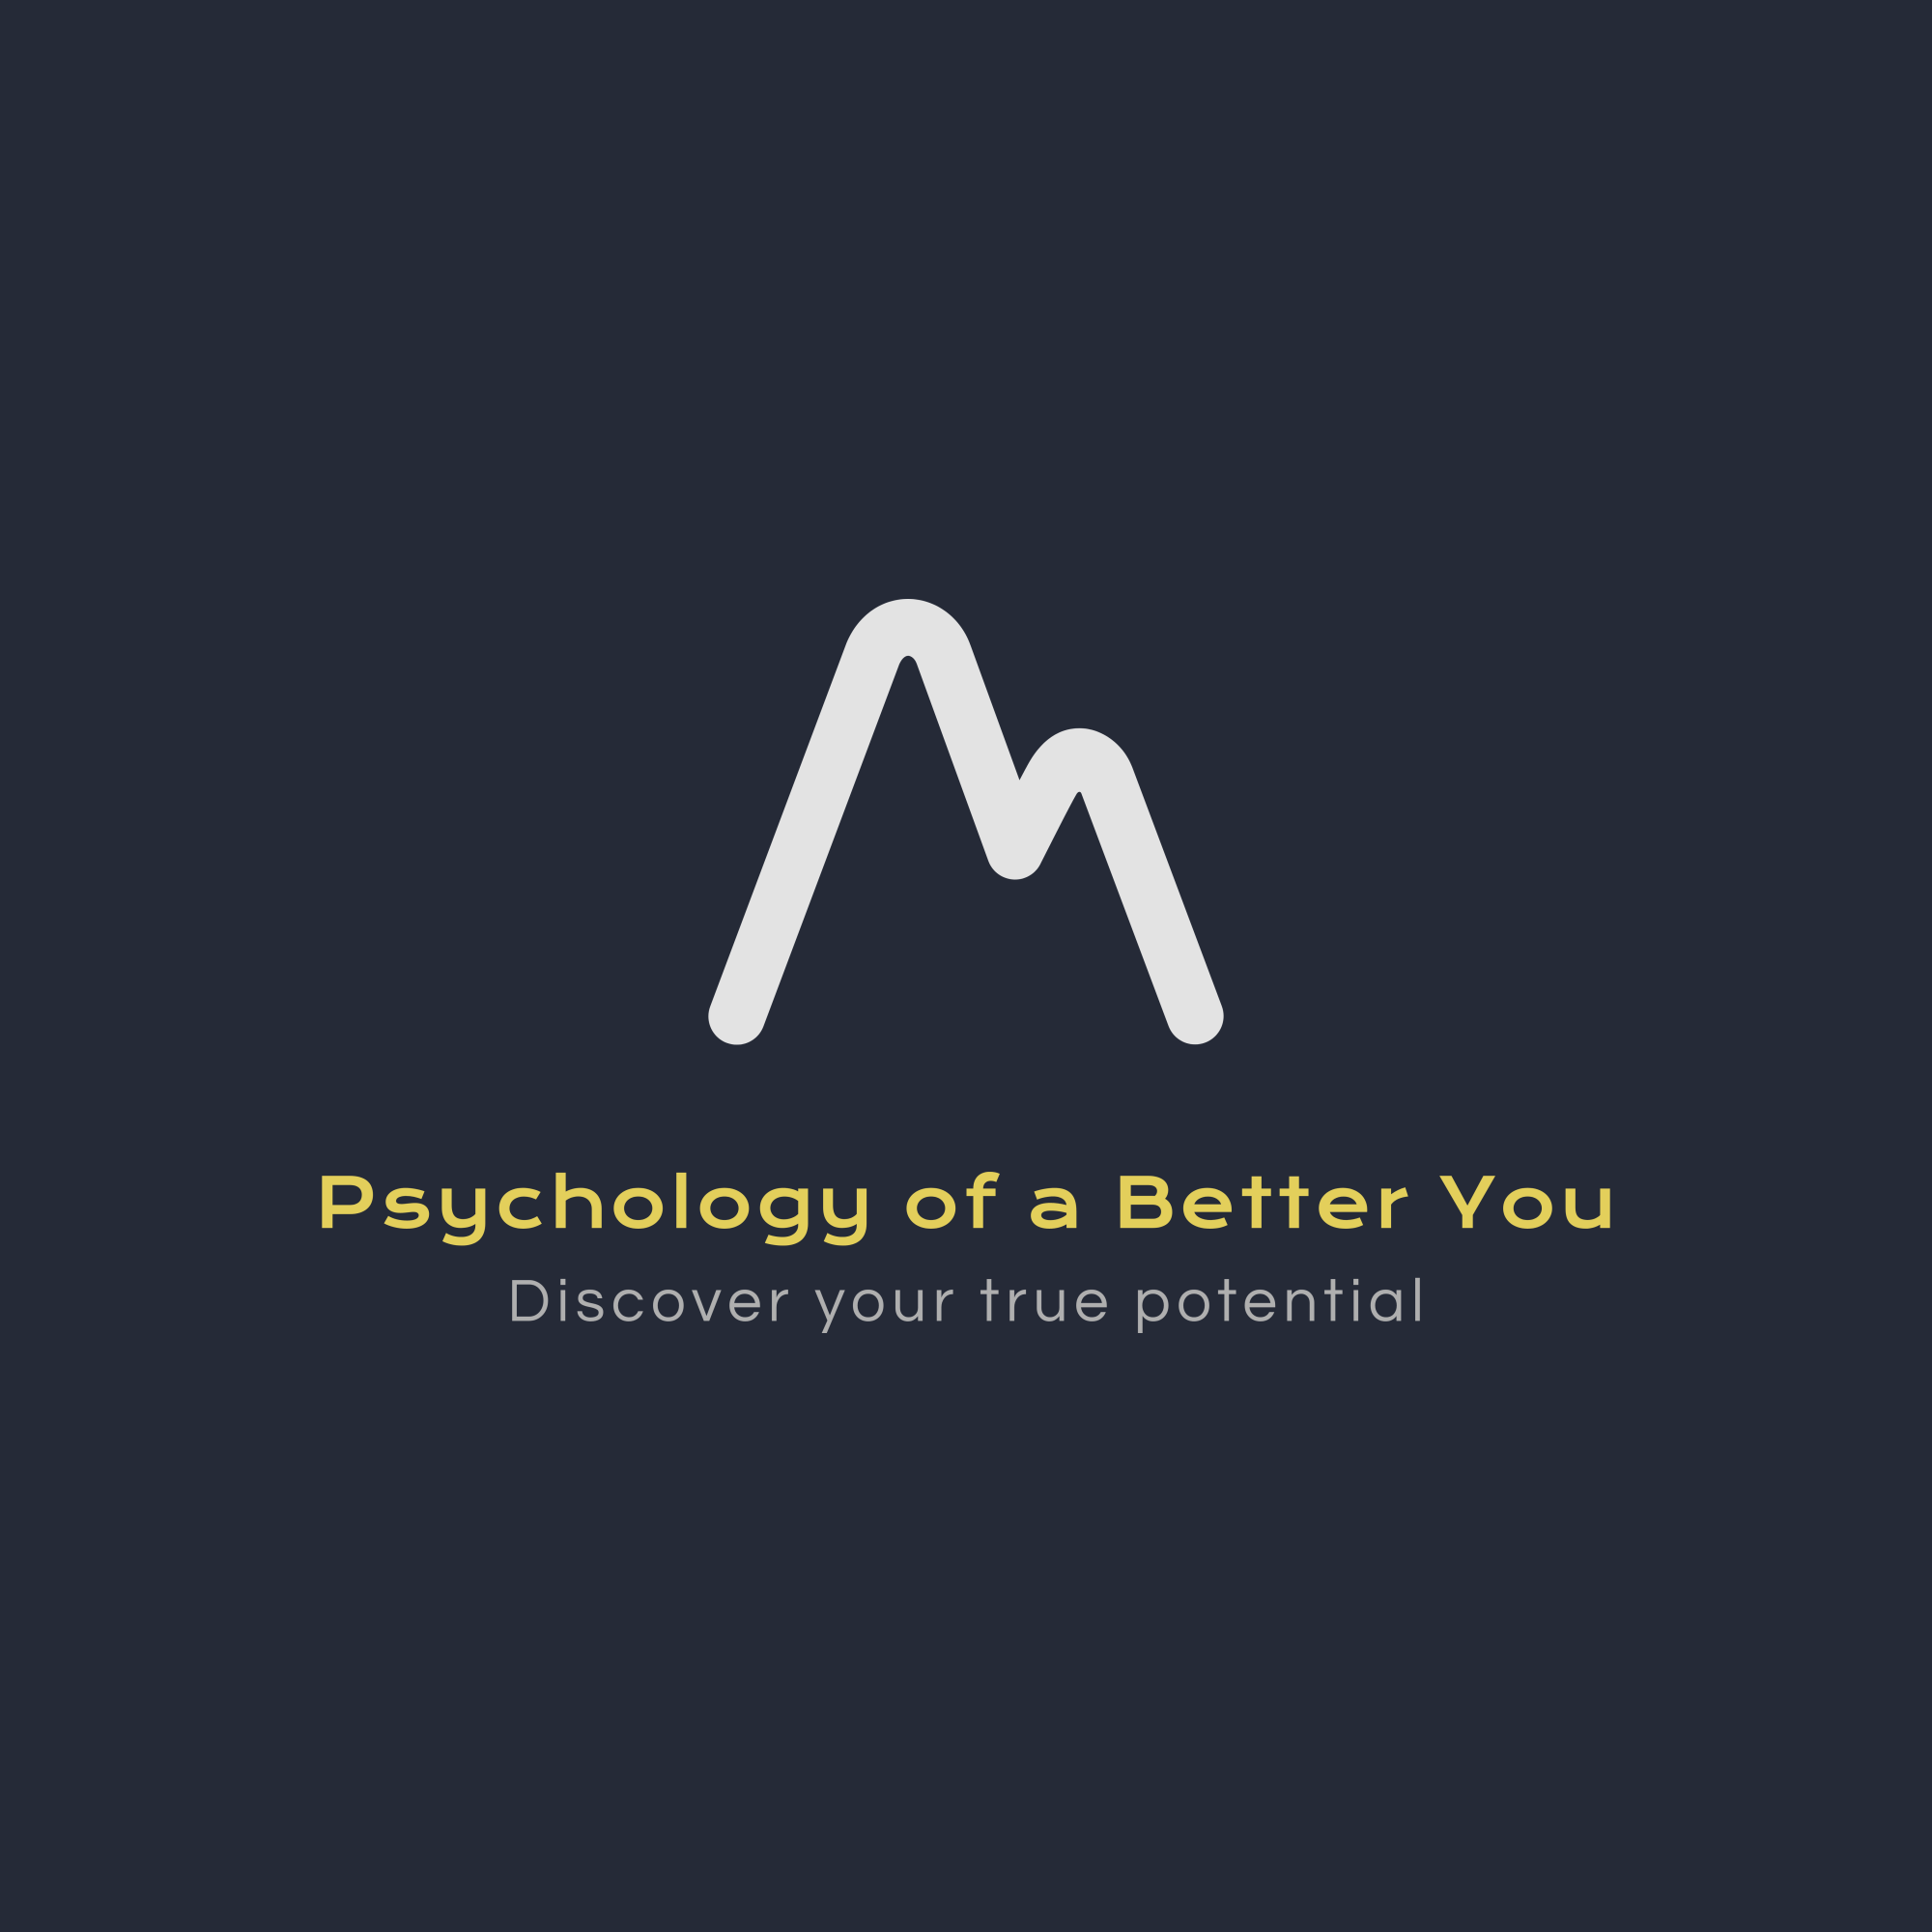 Psychology of a Better You